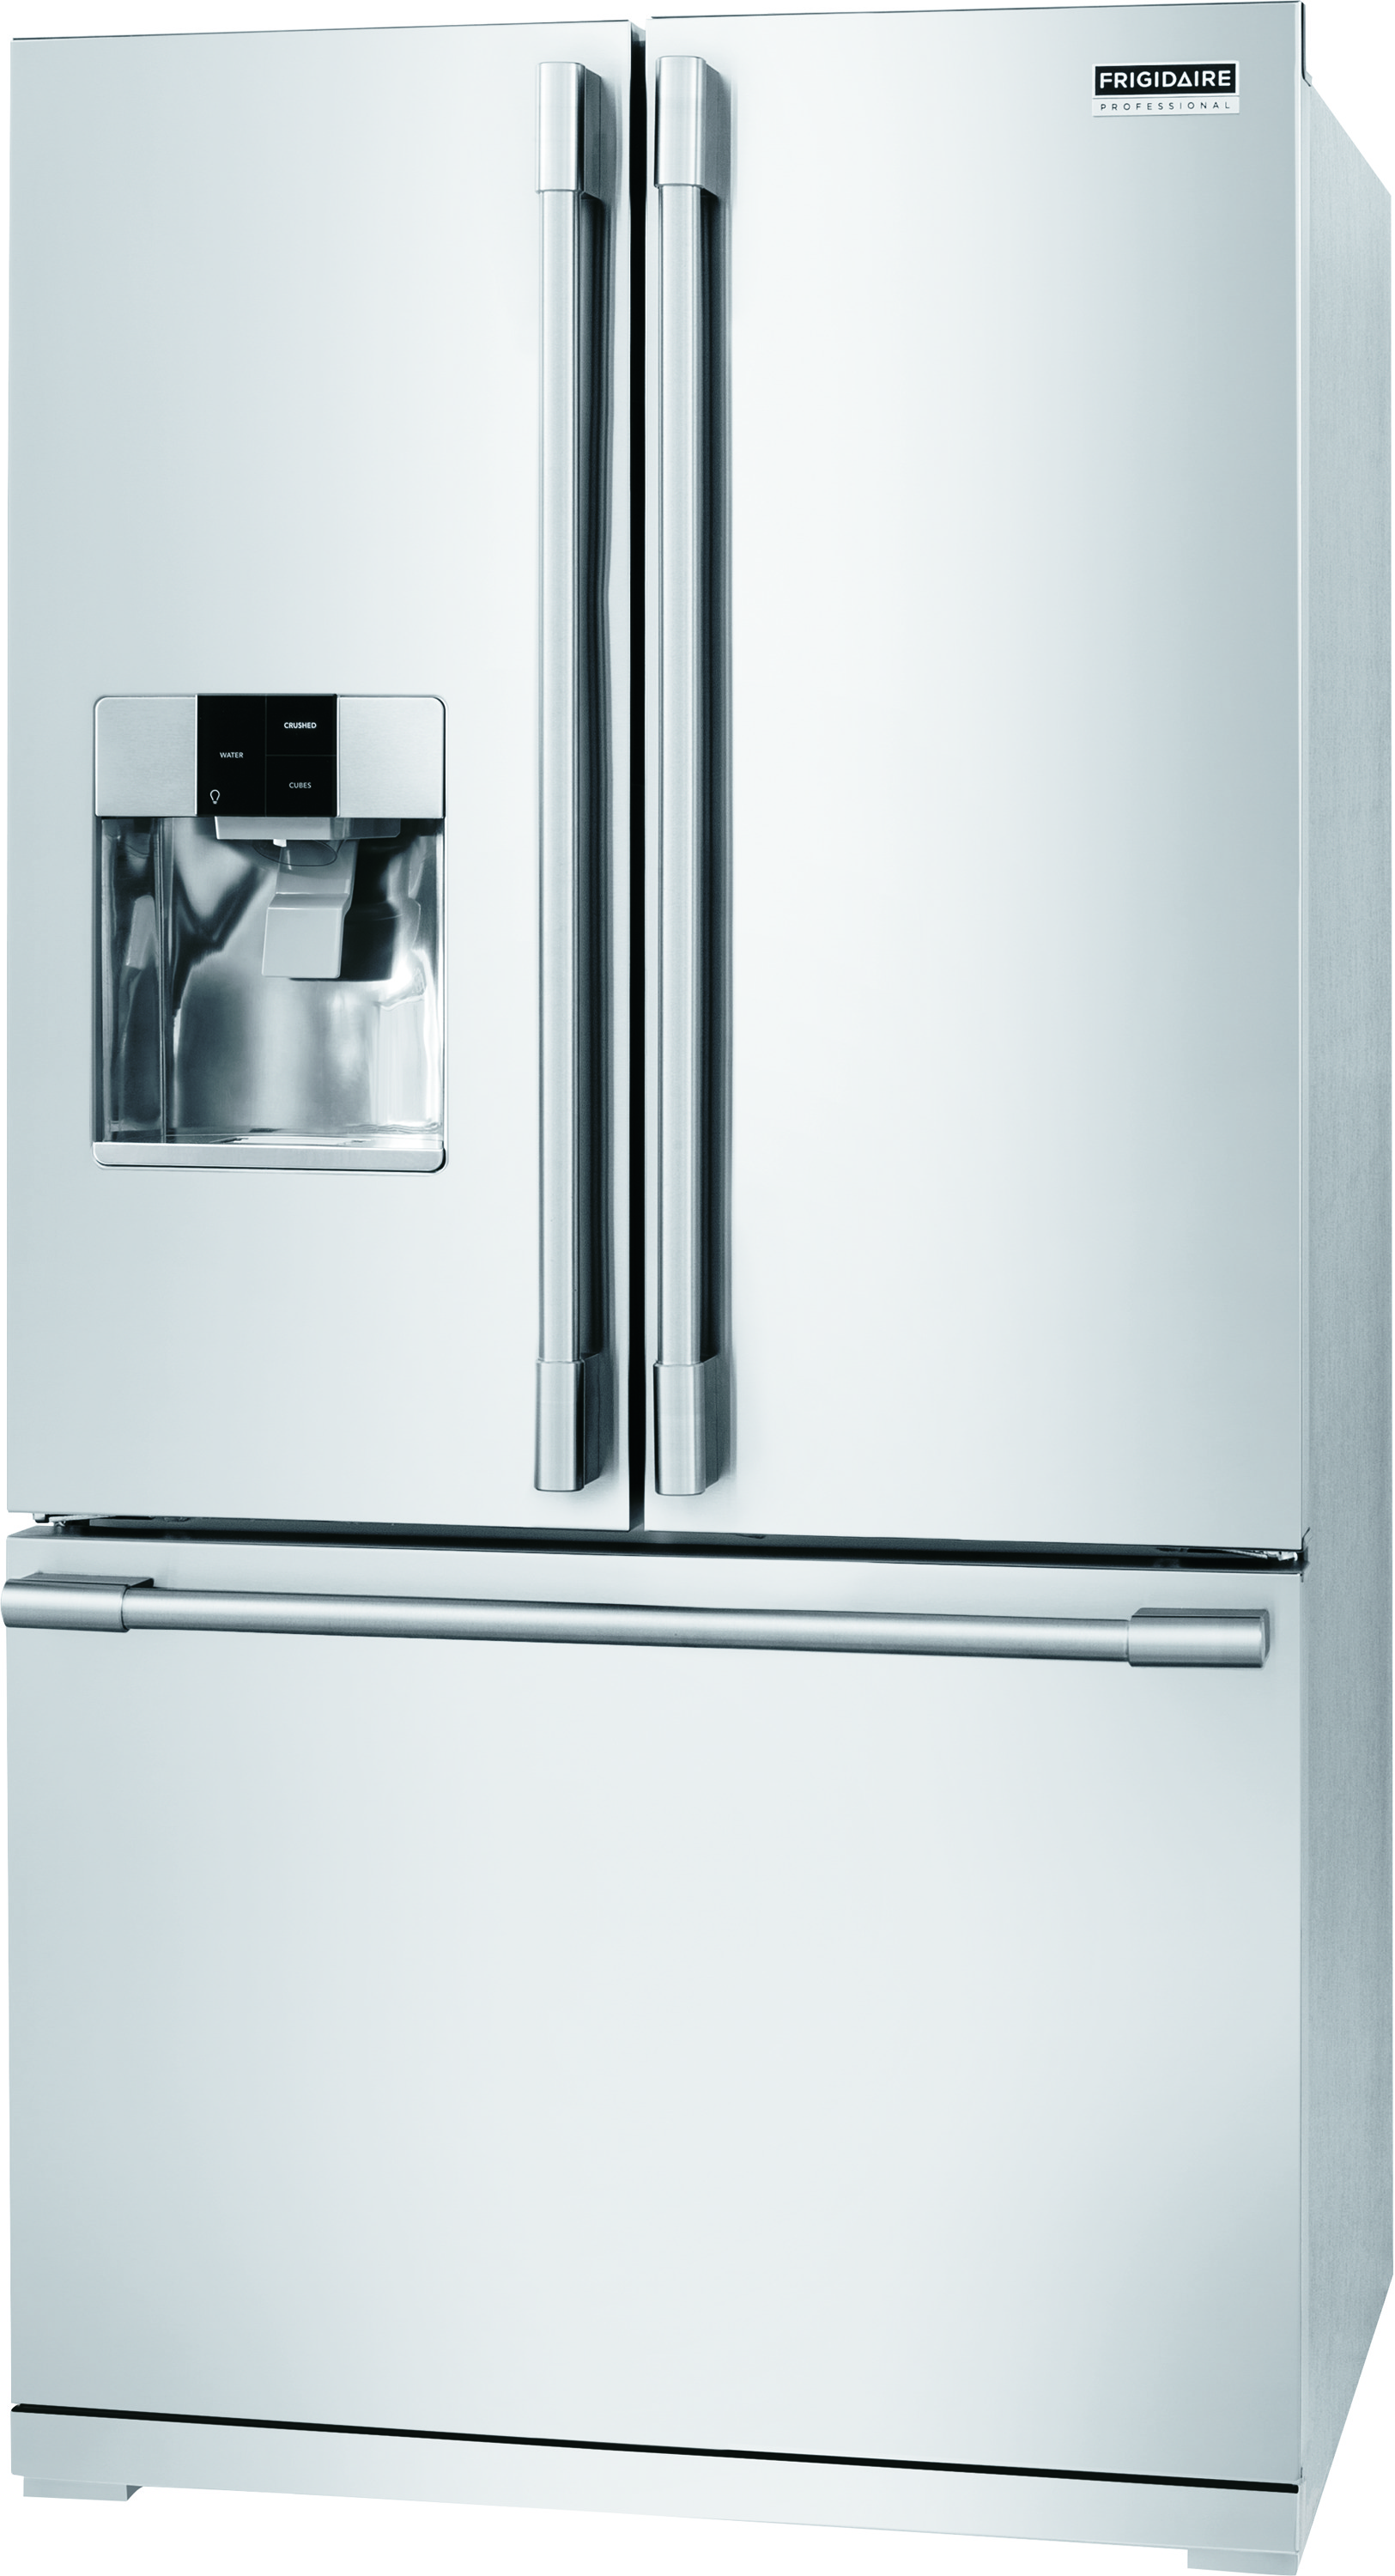 details d steel off french refrigerator door frigidaire gallery product cu spin stainless jsp ft prod